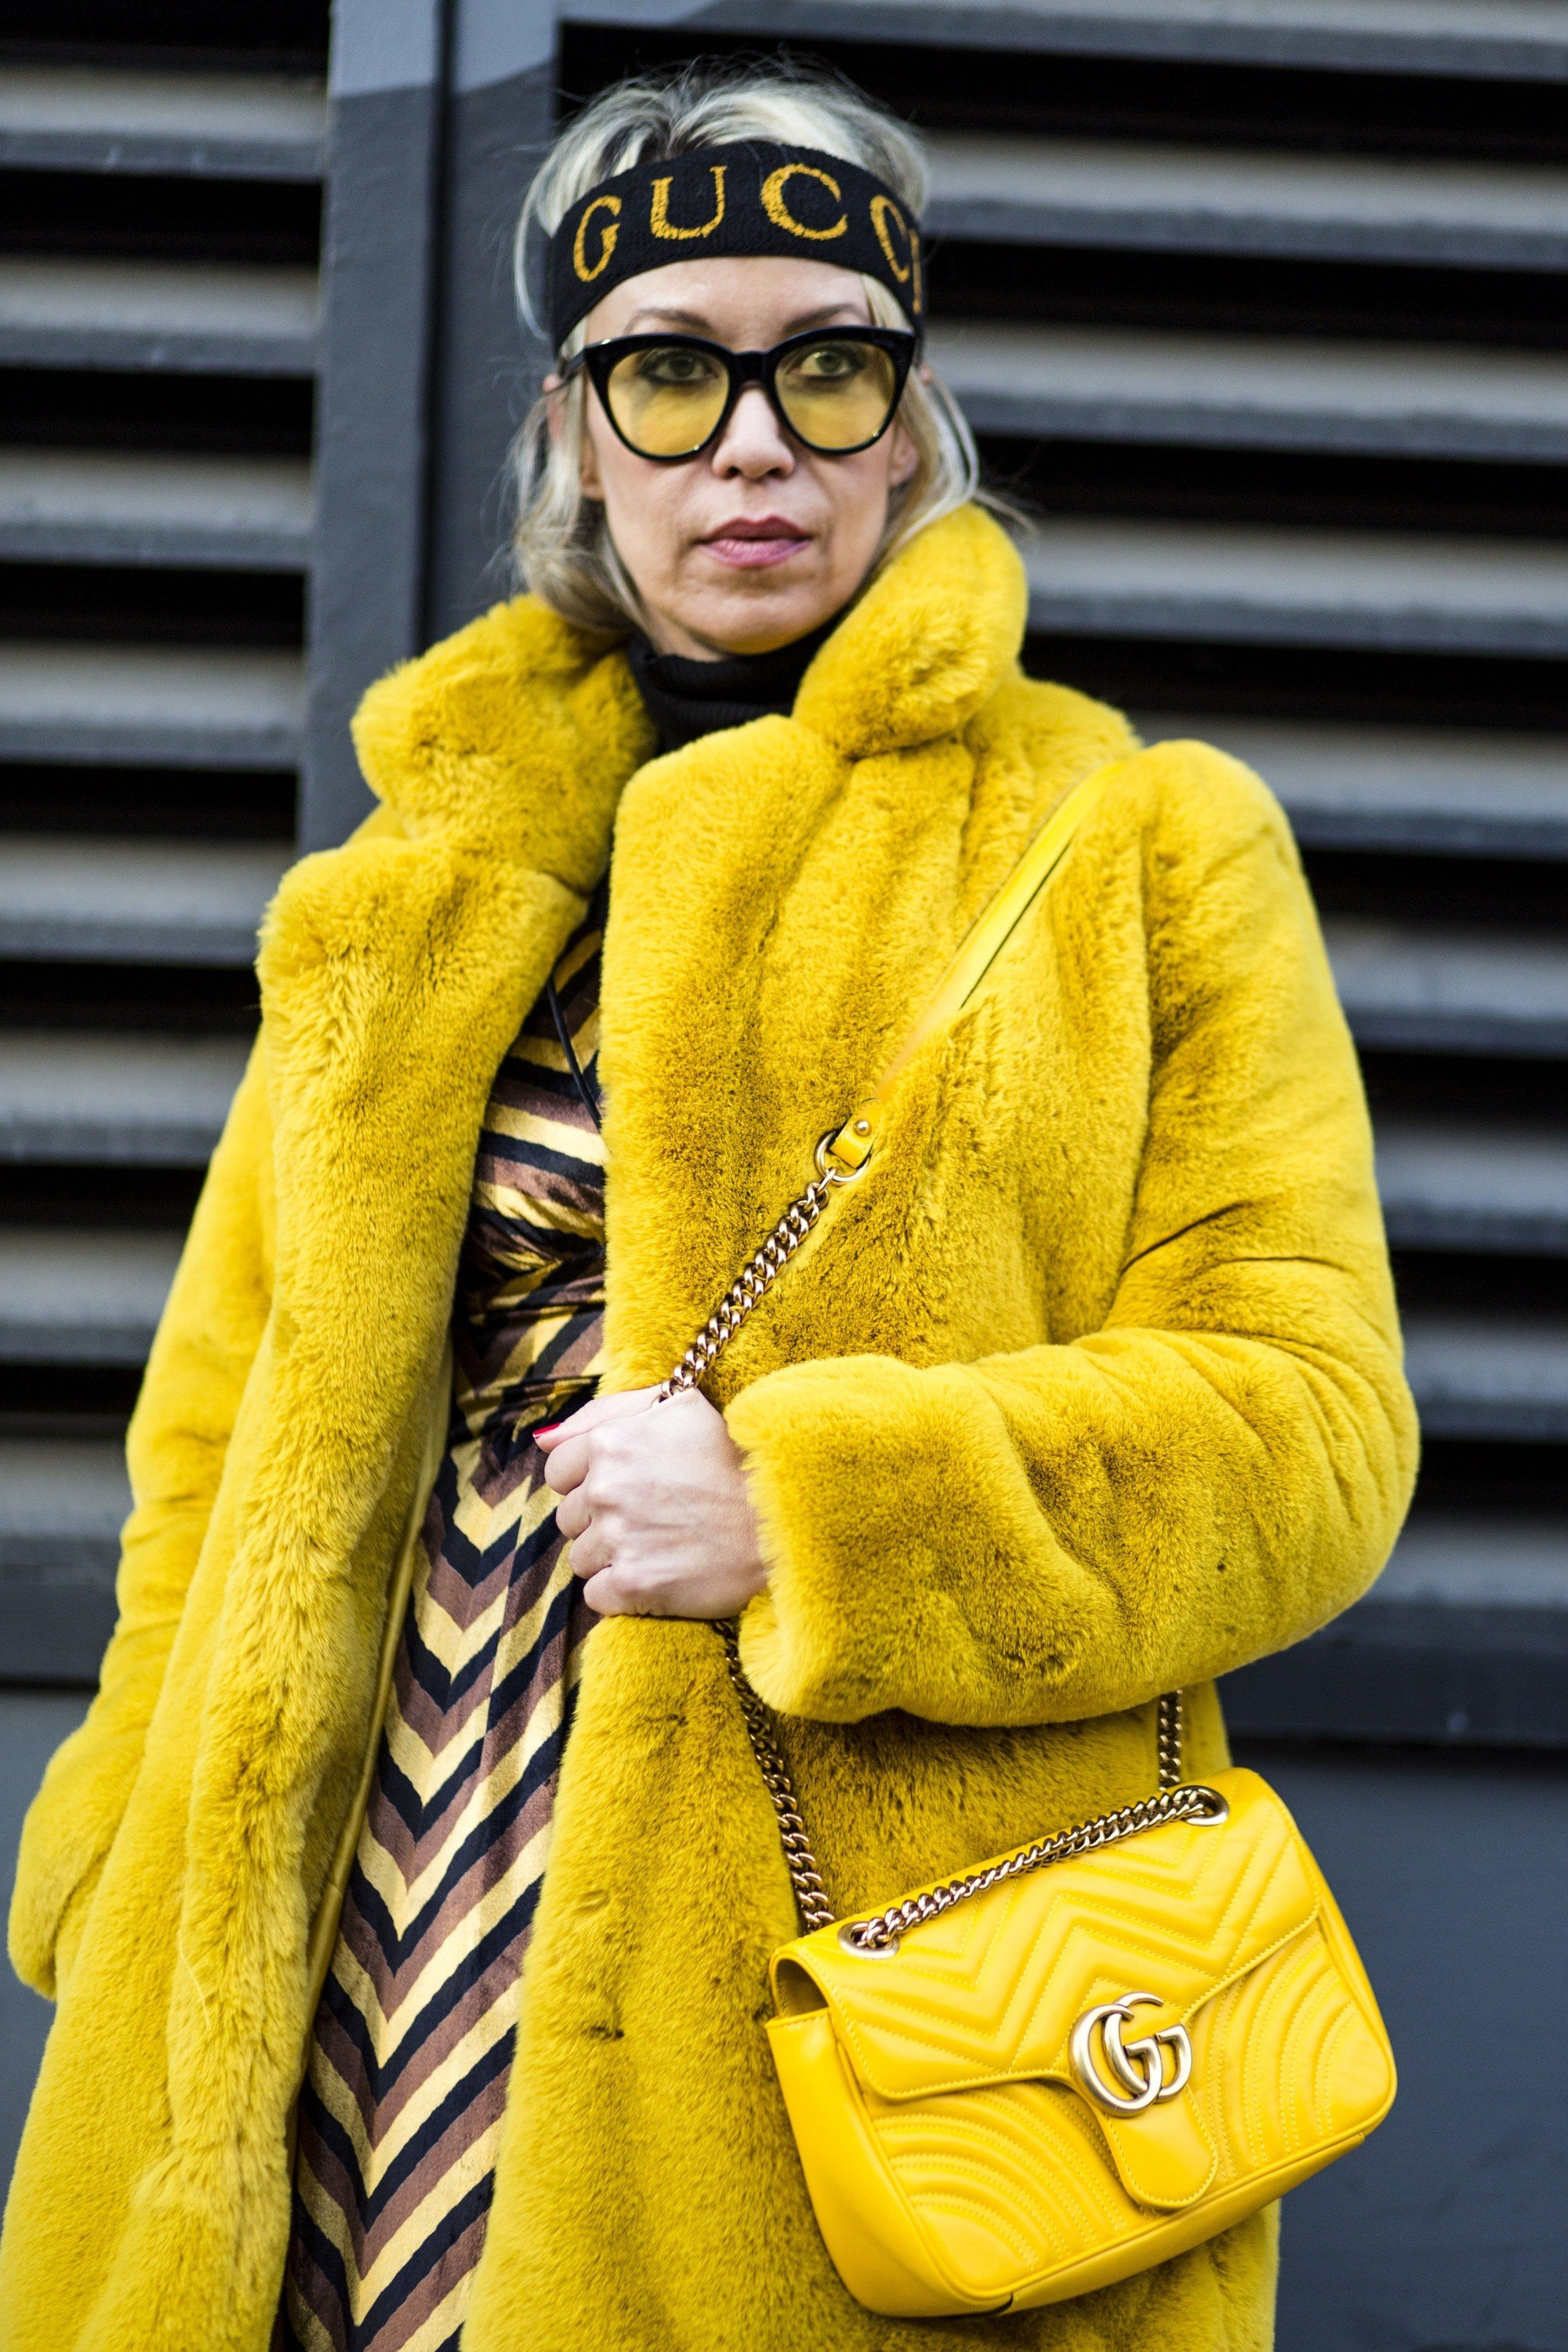 nyfw street style model in an all yellow outfit with a sporty gucci headband